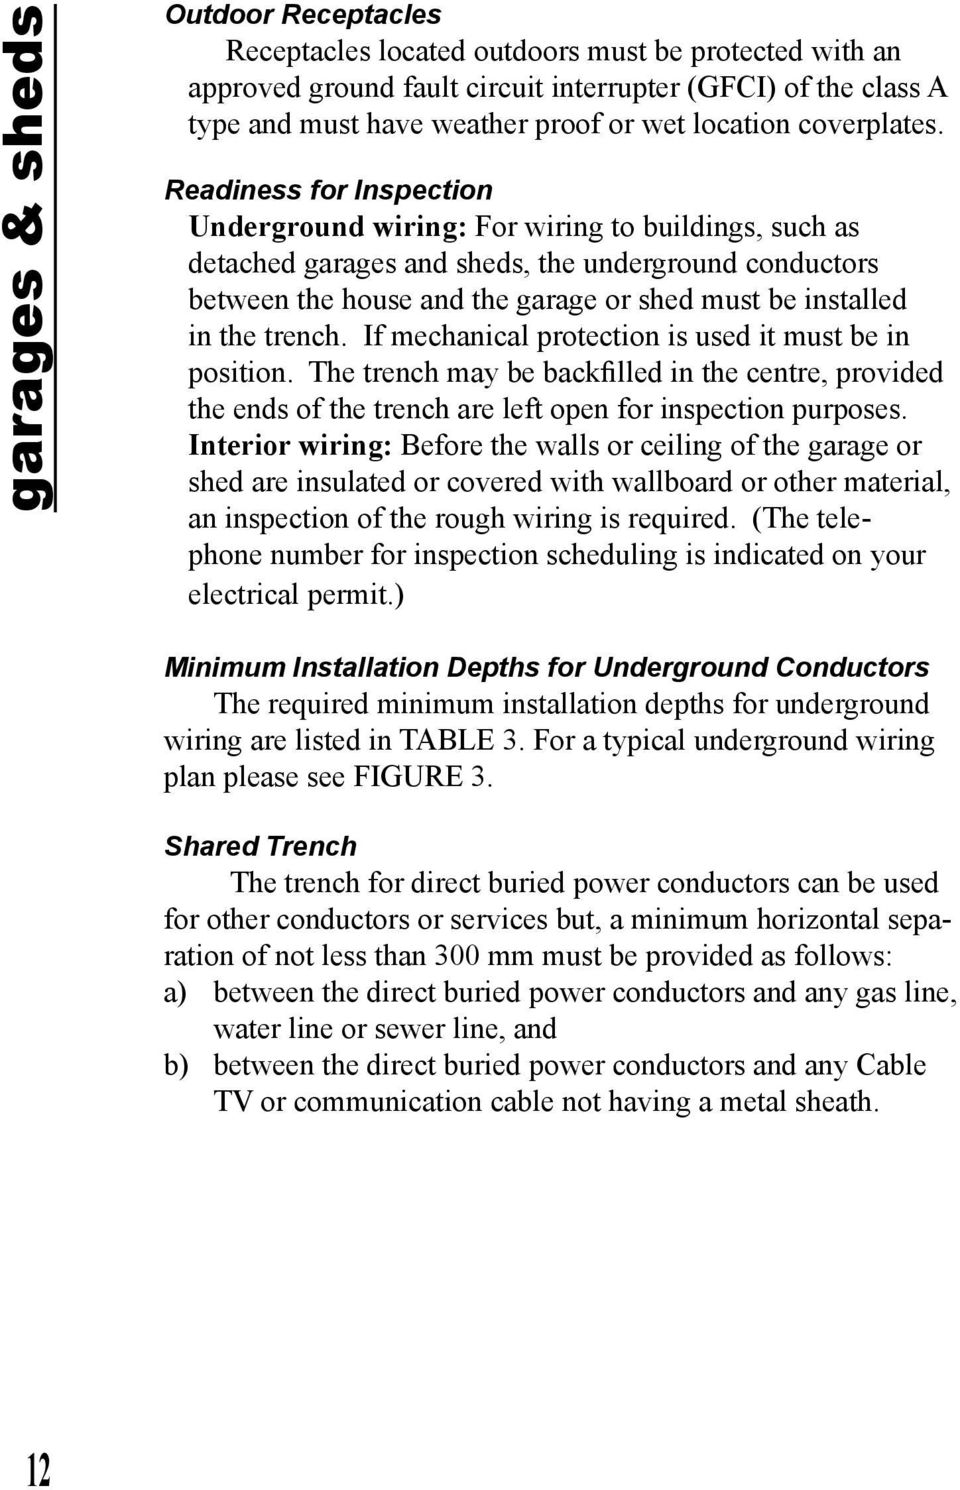 Electrical Installations A Homeowner Guide To The Winnipeg Receptacle Wiring In Garage Readiness For Inspection Underground Buildings Such As Detached Garages And